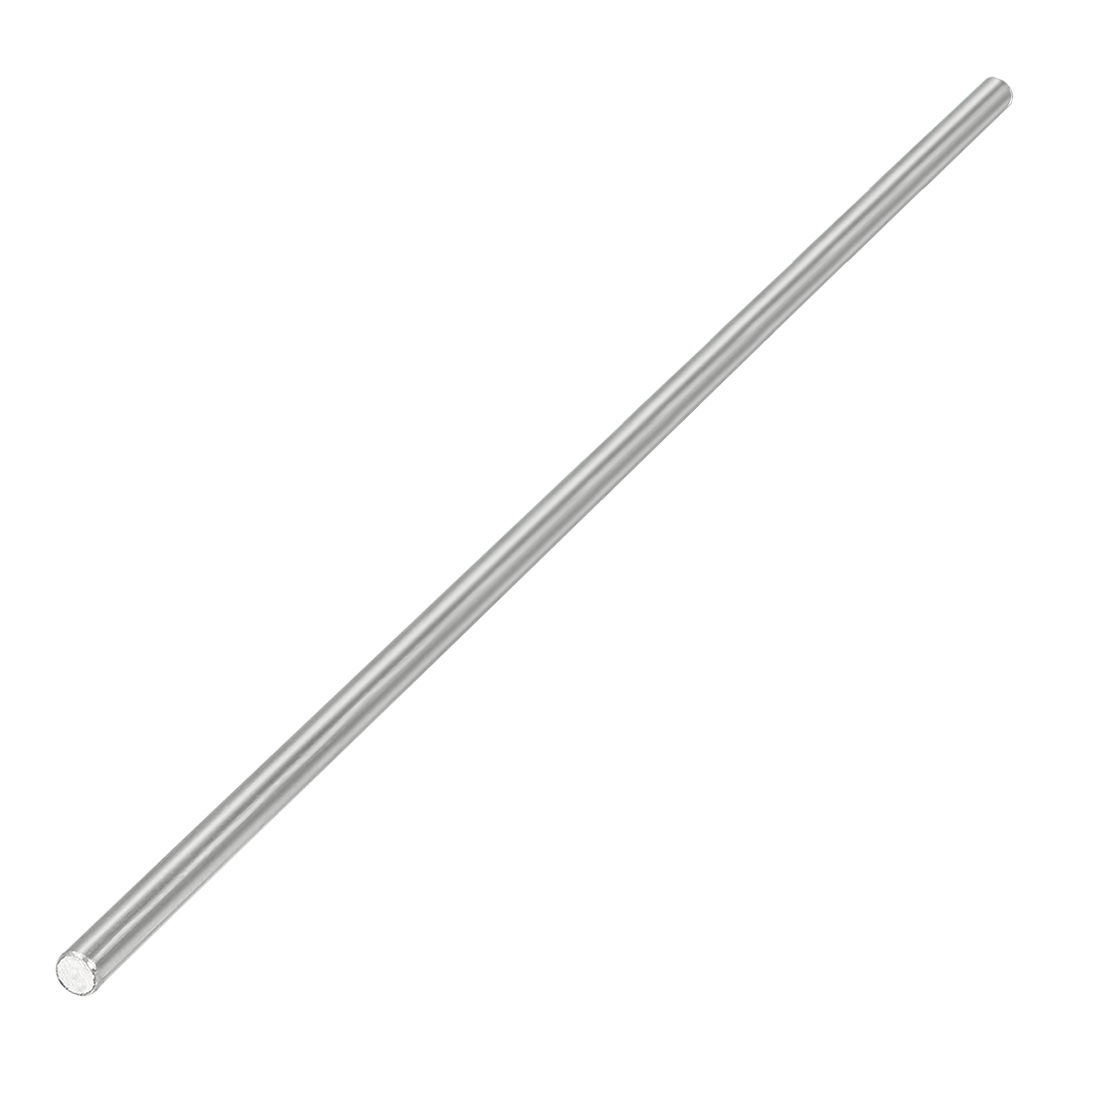 2.5mm Dia 160mm Length Stainless Steel Solid Round Shaft Rod for RC Model Toy